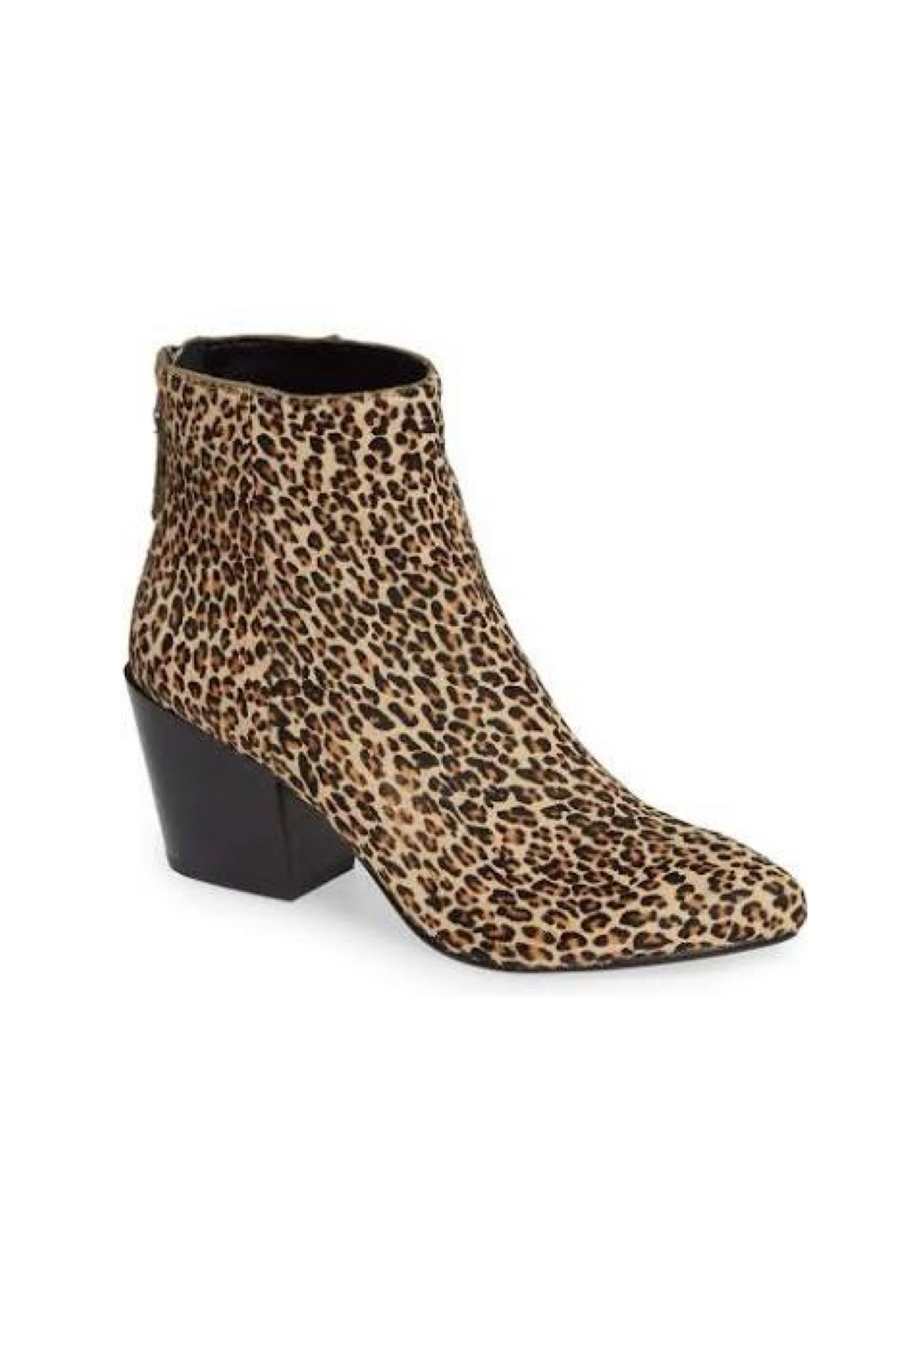 Coltyn Leopard Calf Hair Booties by Dolce Vita